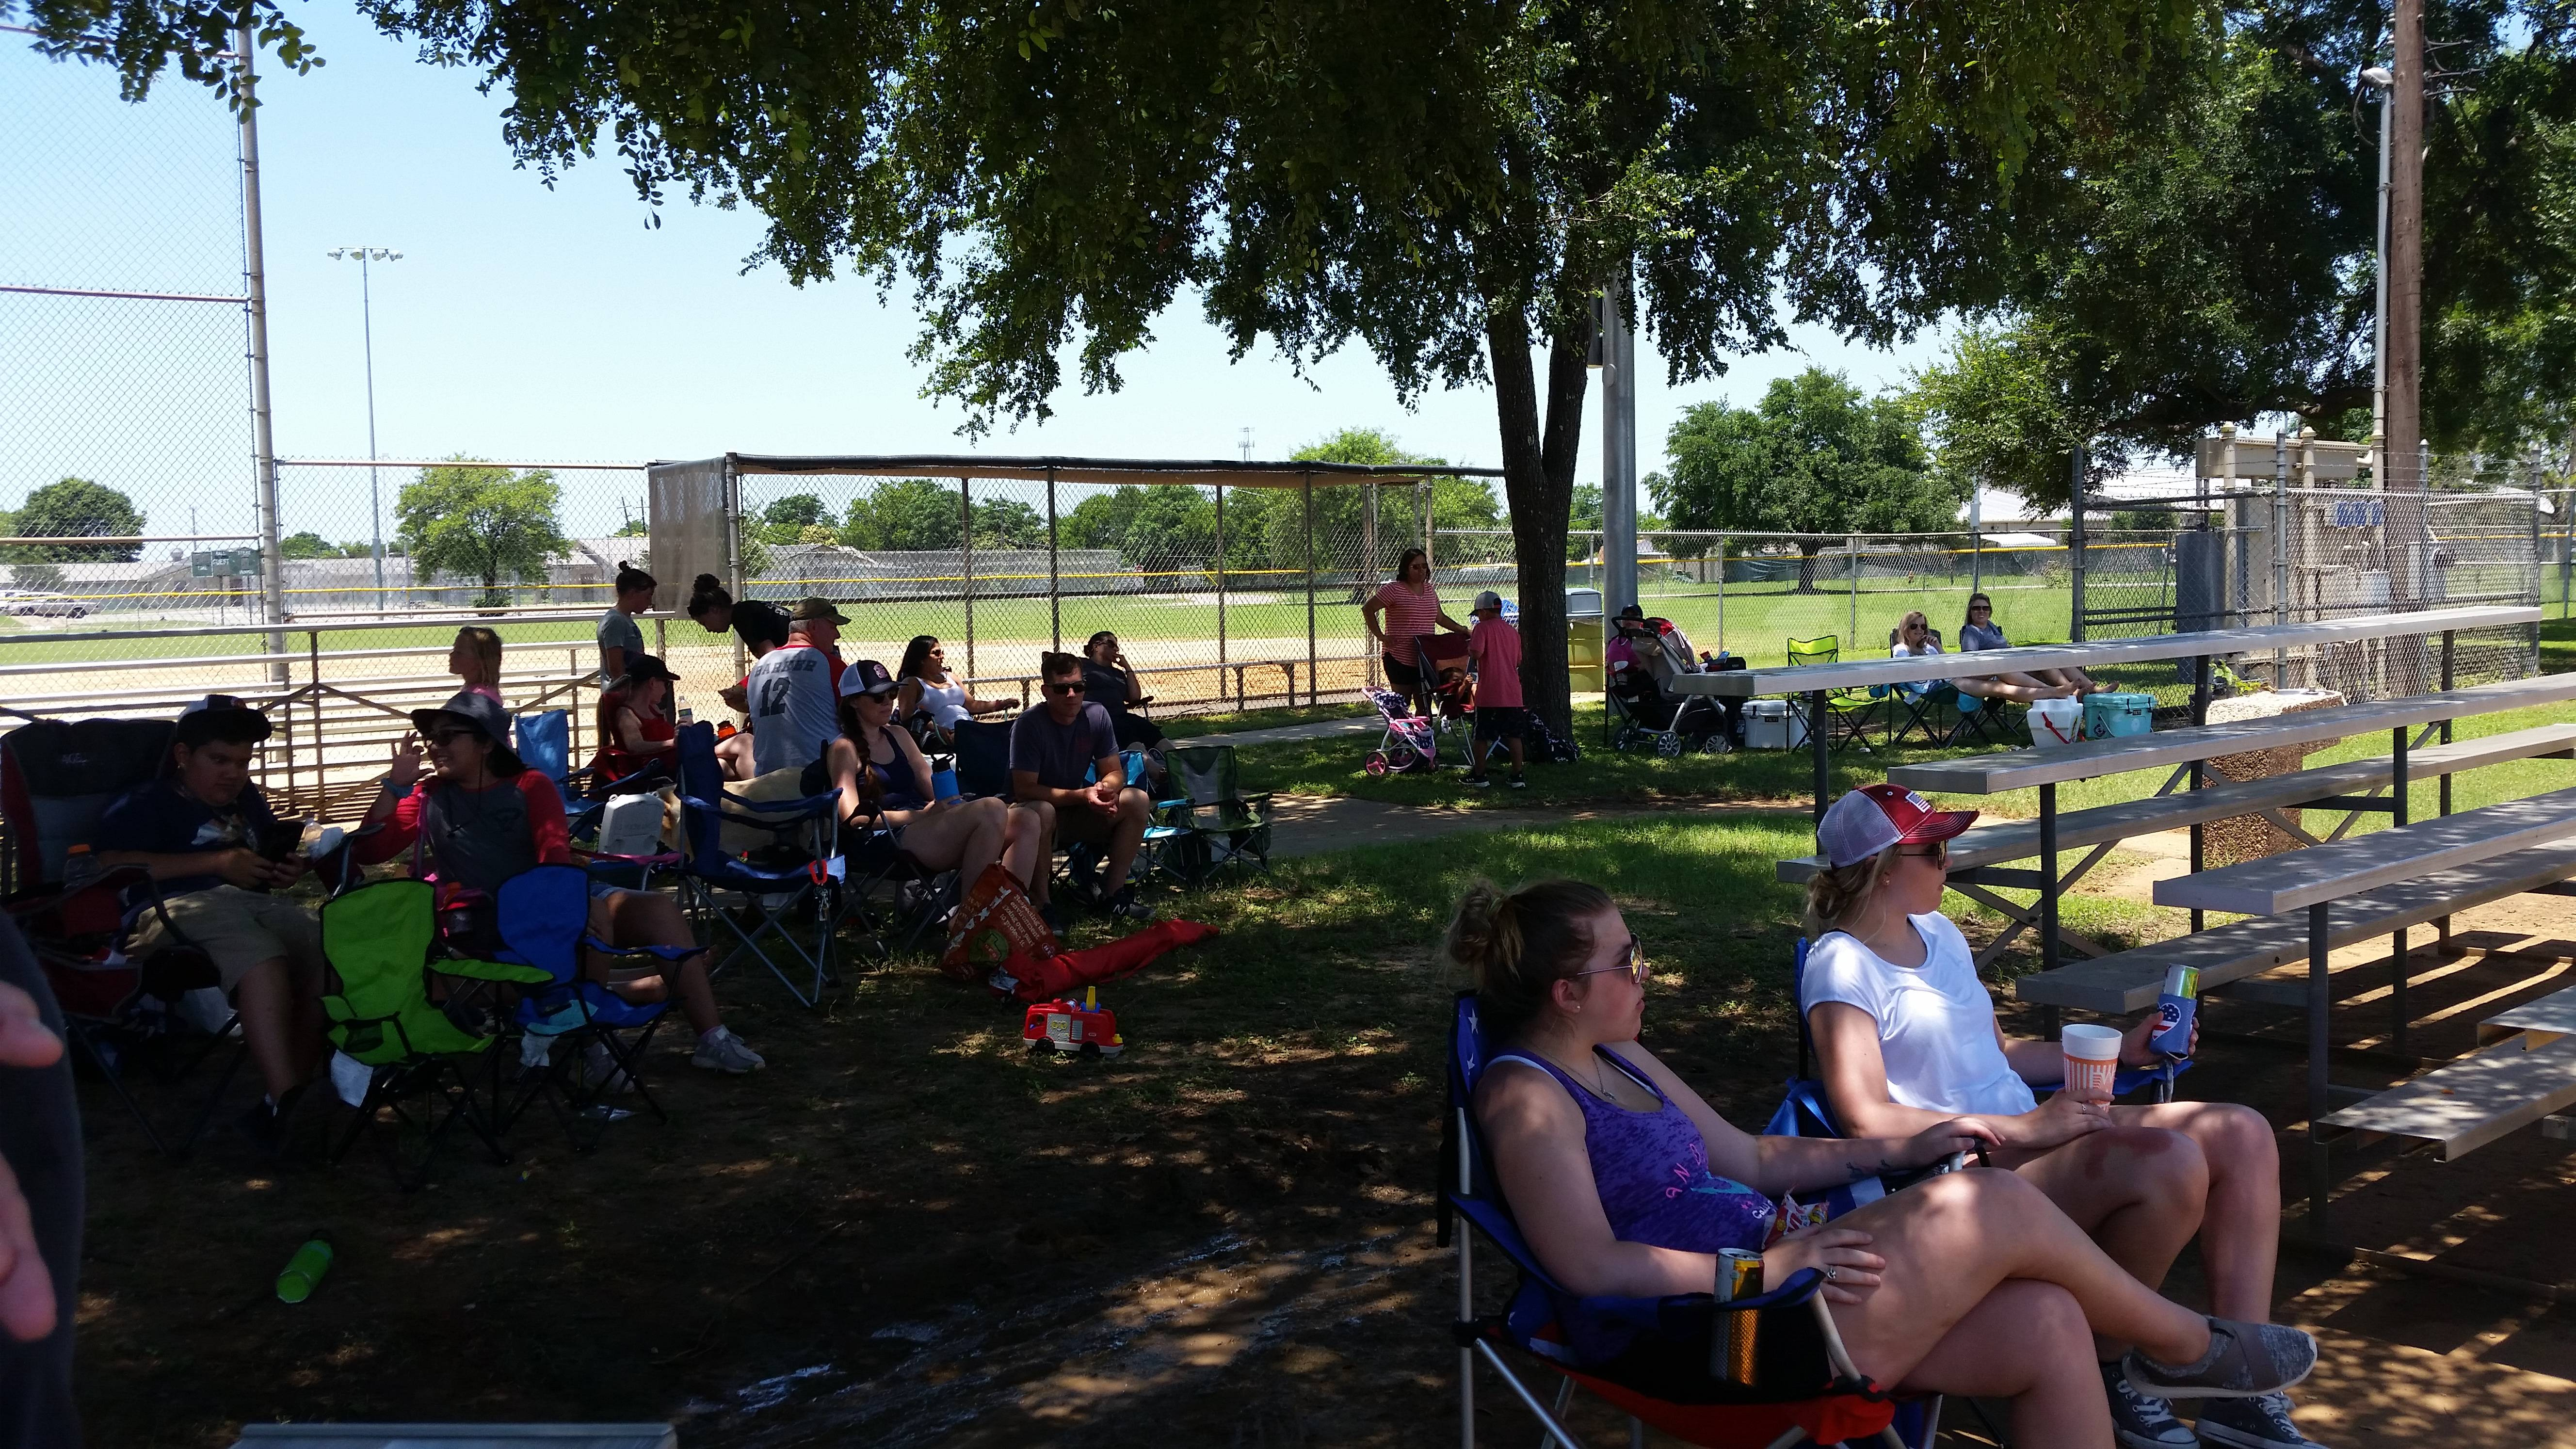 Families & Friends come out to support their teams